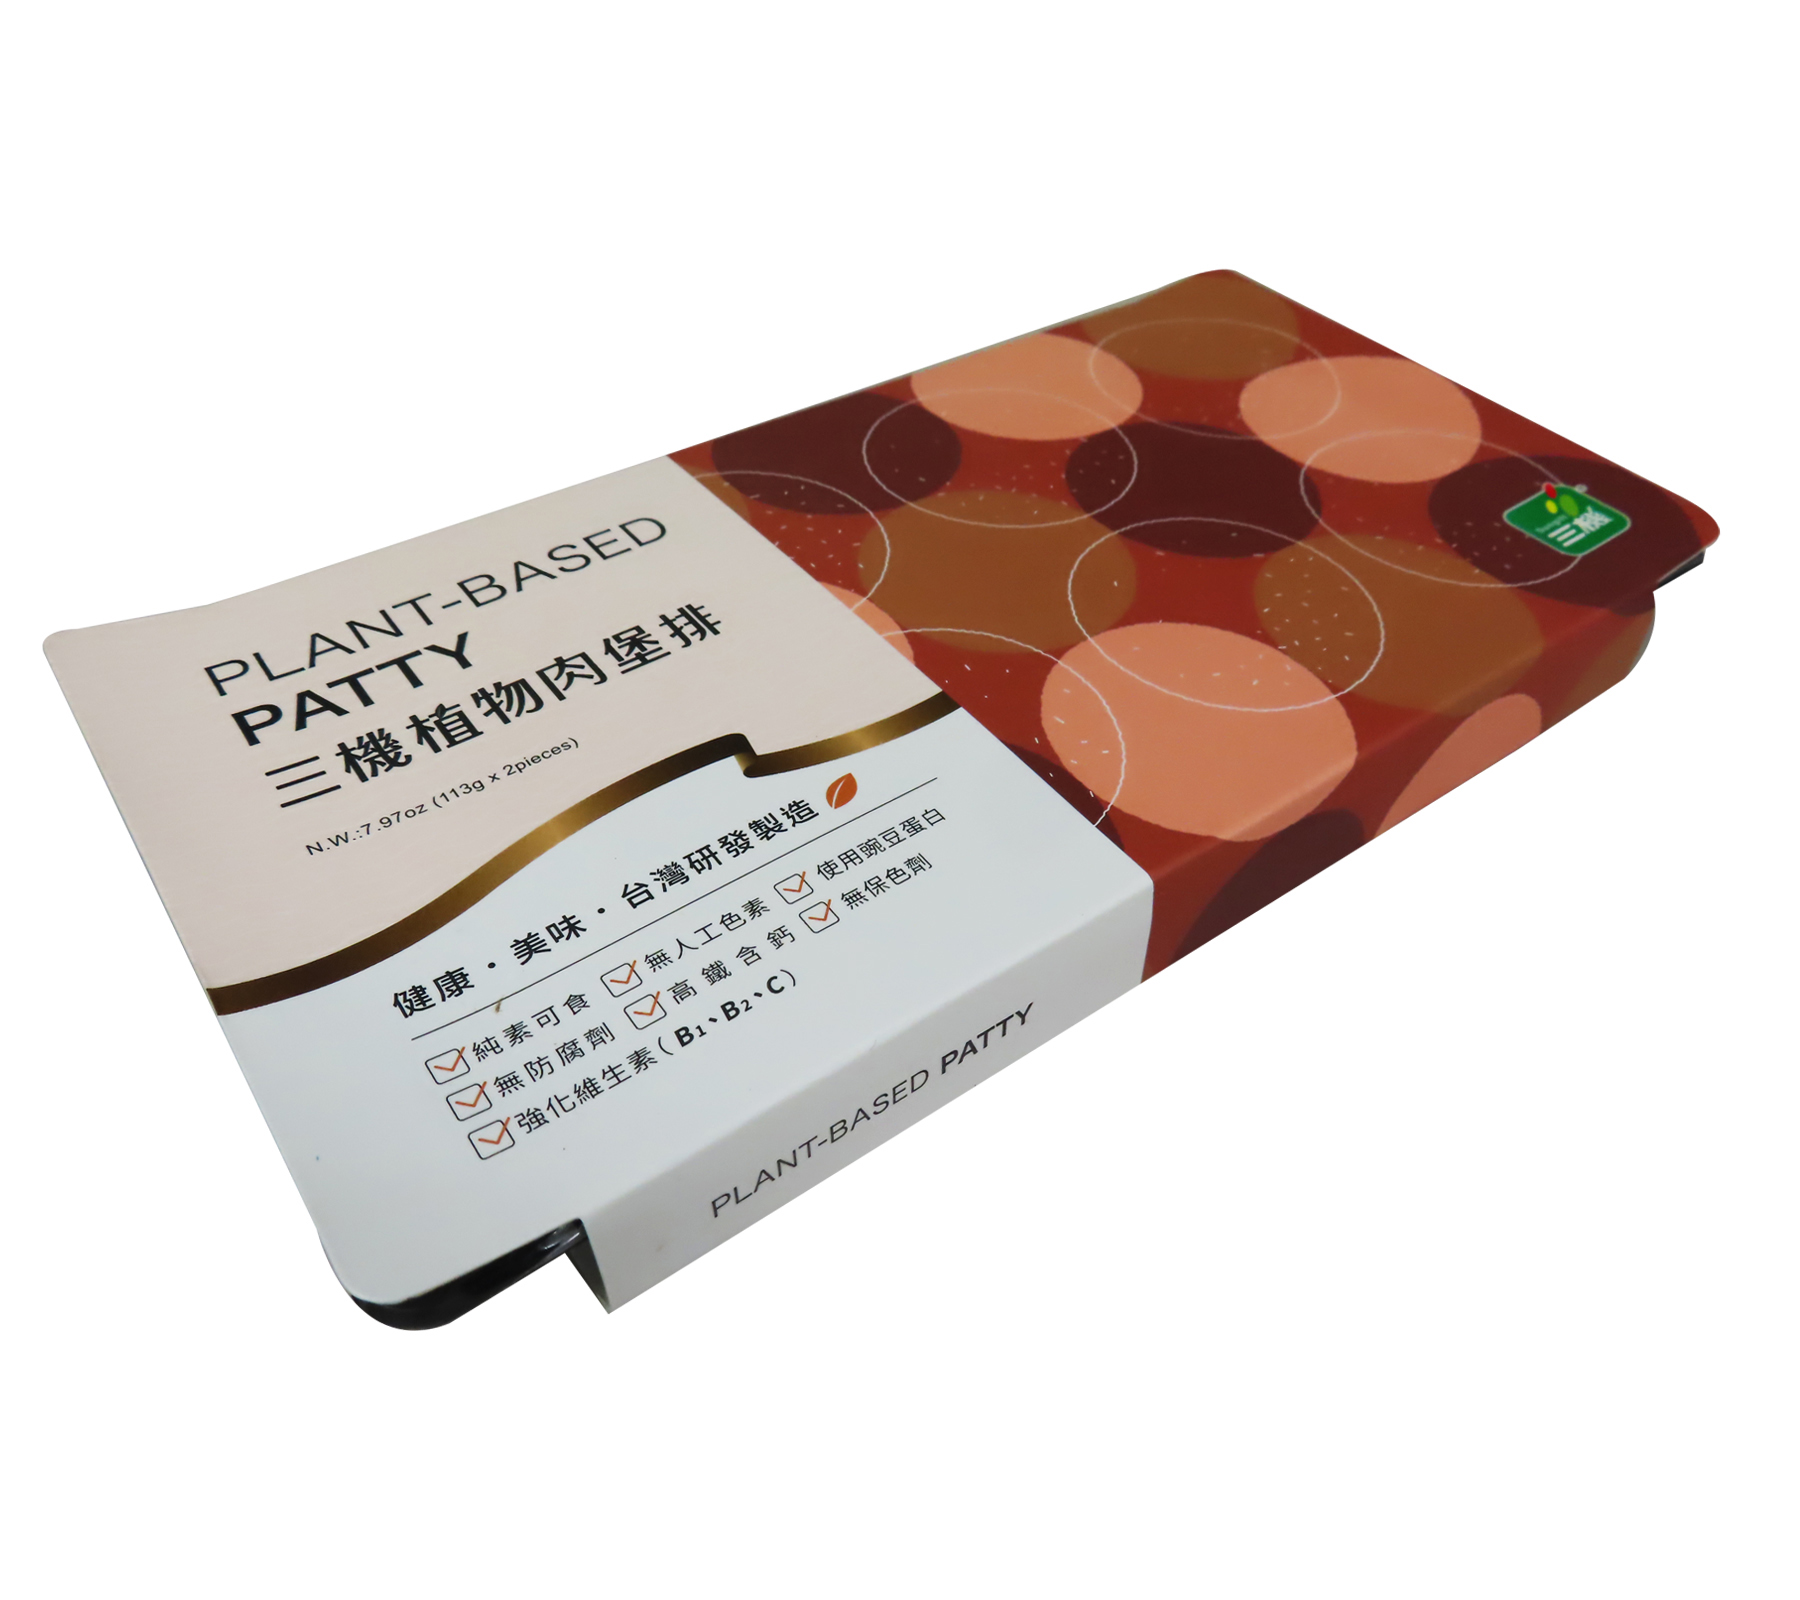 Image Sungift Plant - Based Patty 三机植物肉堡排 (2 片)226grams